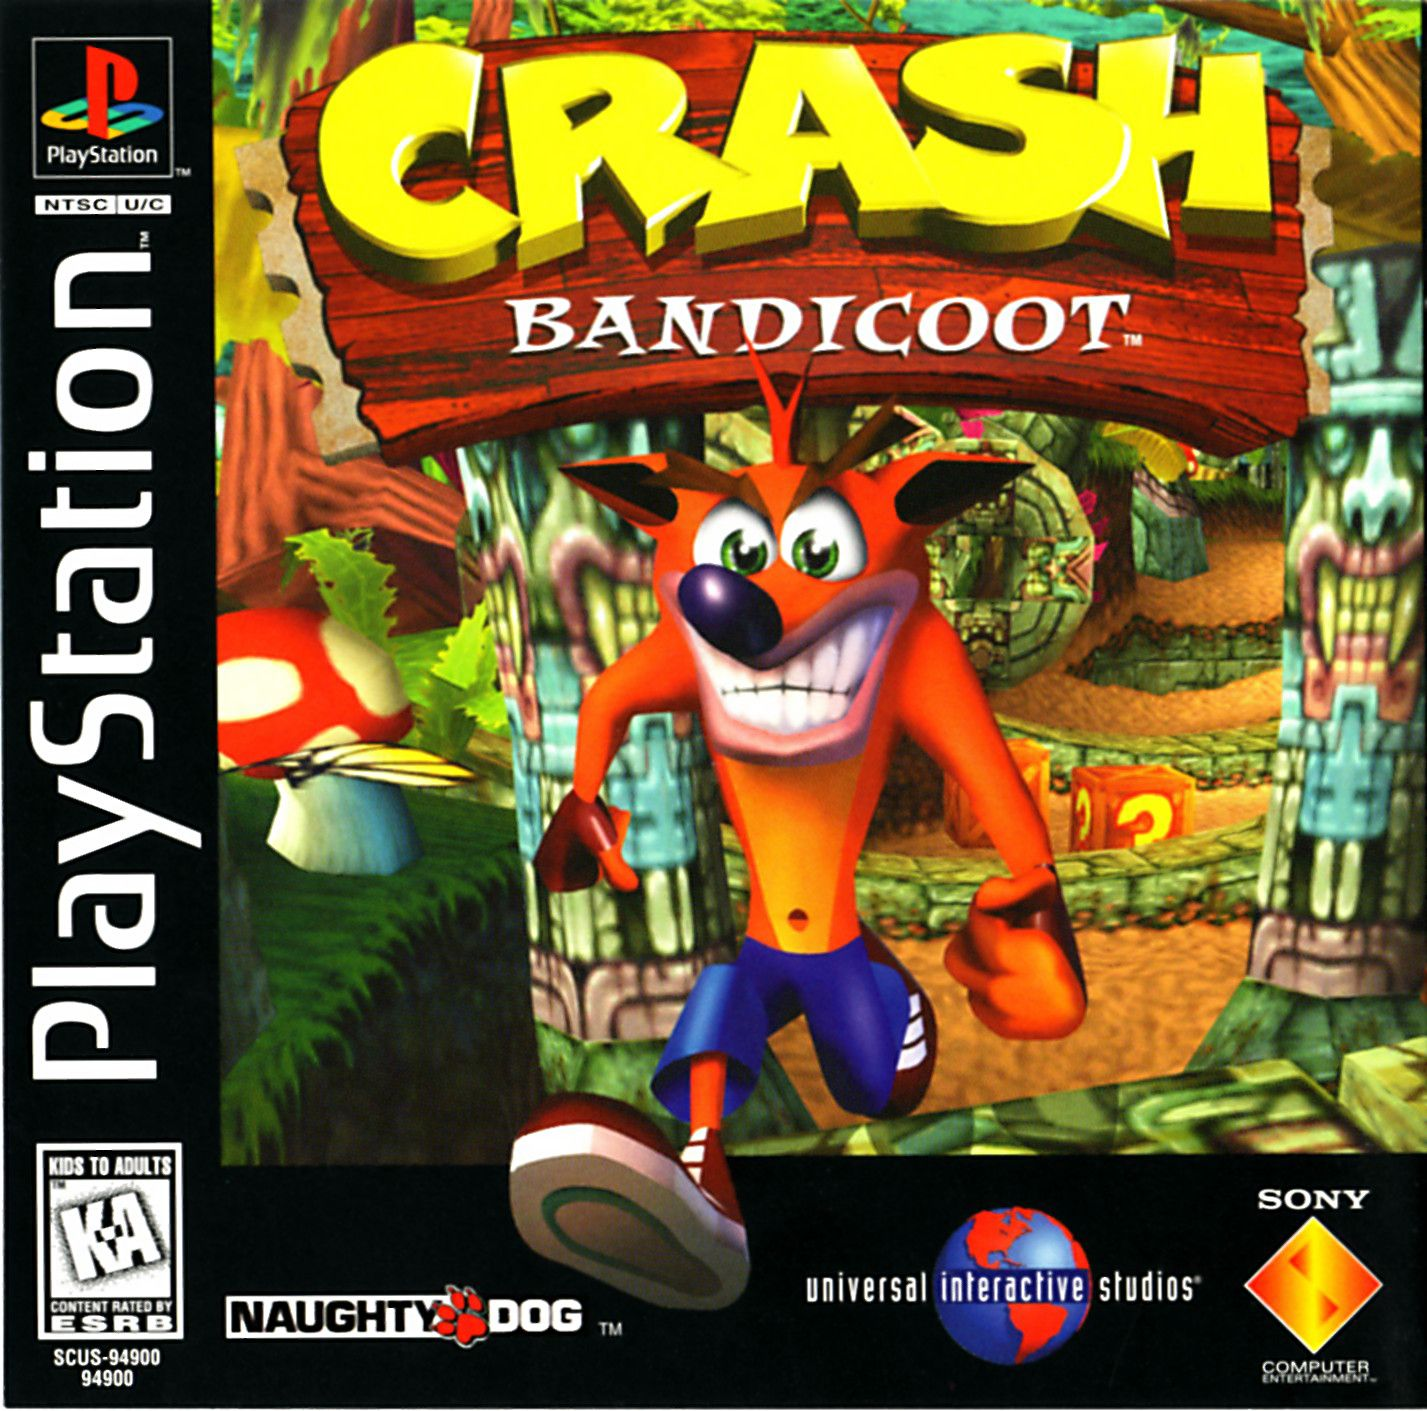 Crash Bandicoot Boxart High Res Front And Back Crash Bandicoot Ps1 Crash Bandicoot Bandicoot